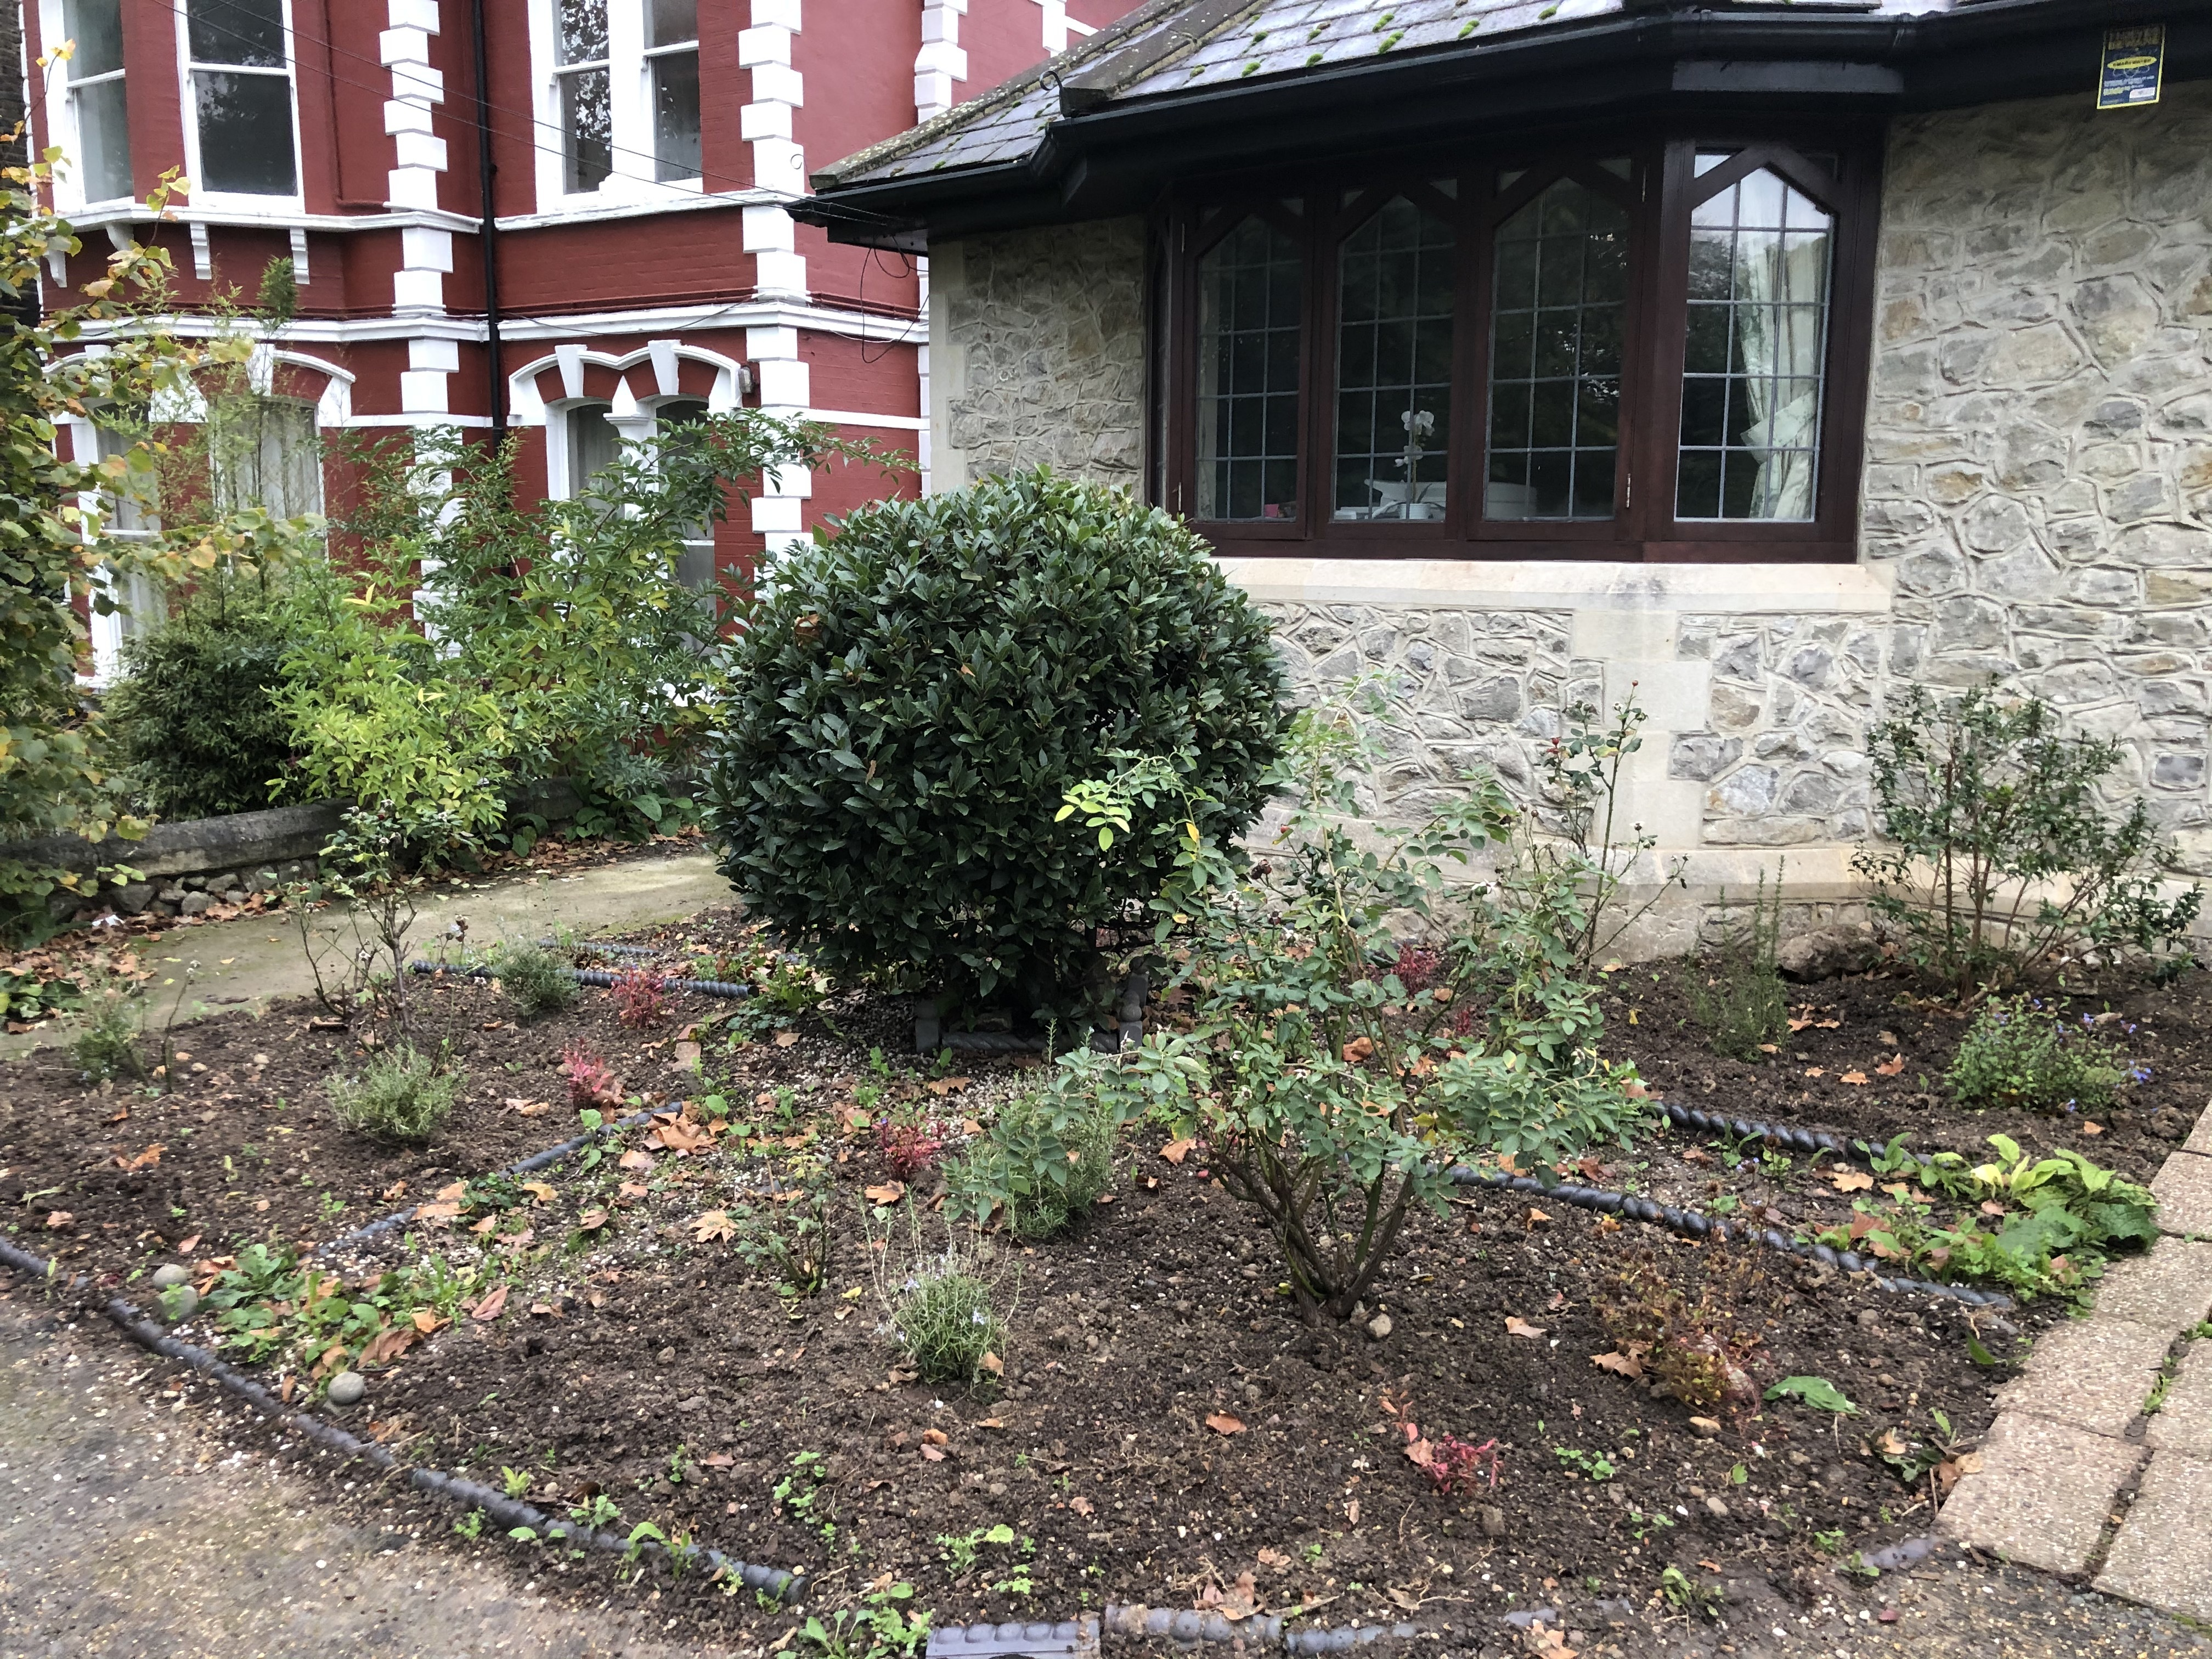 Image of the Knot Garden in Church